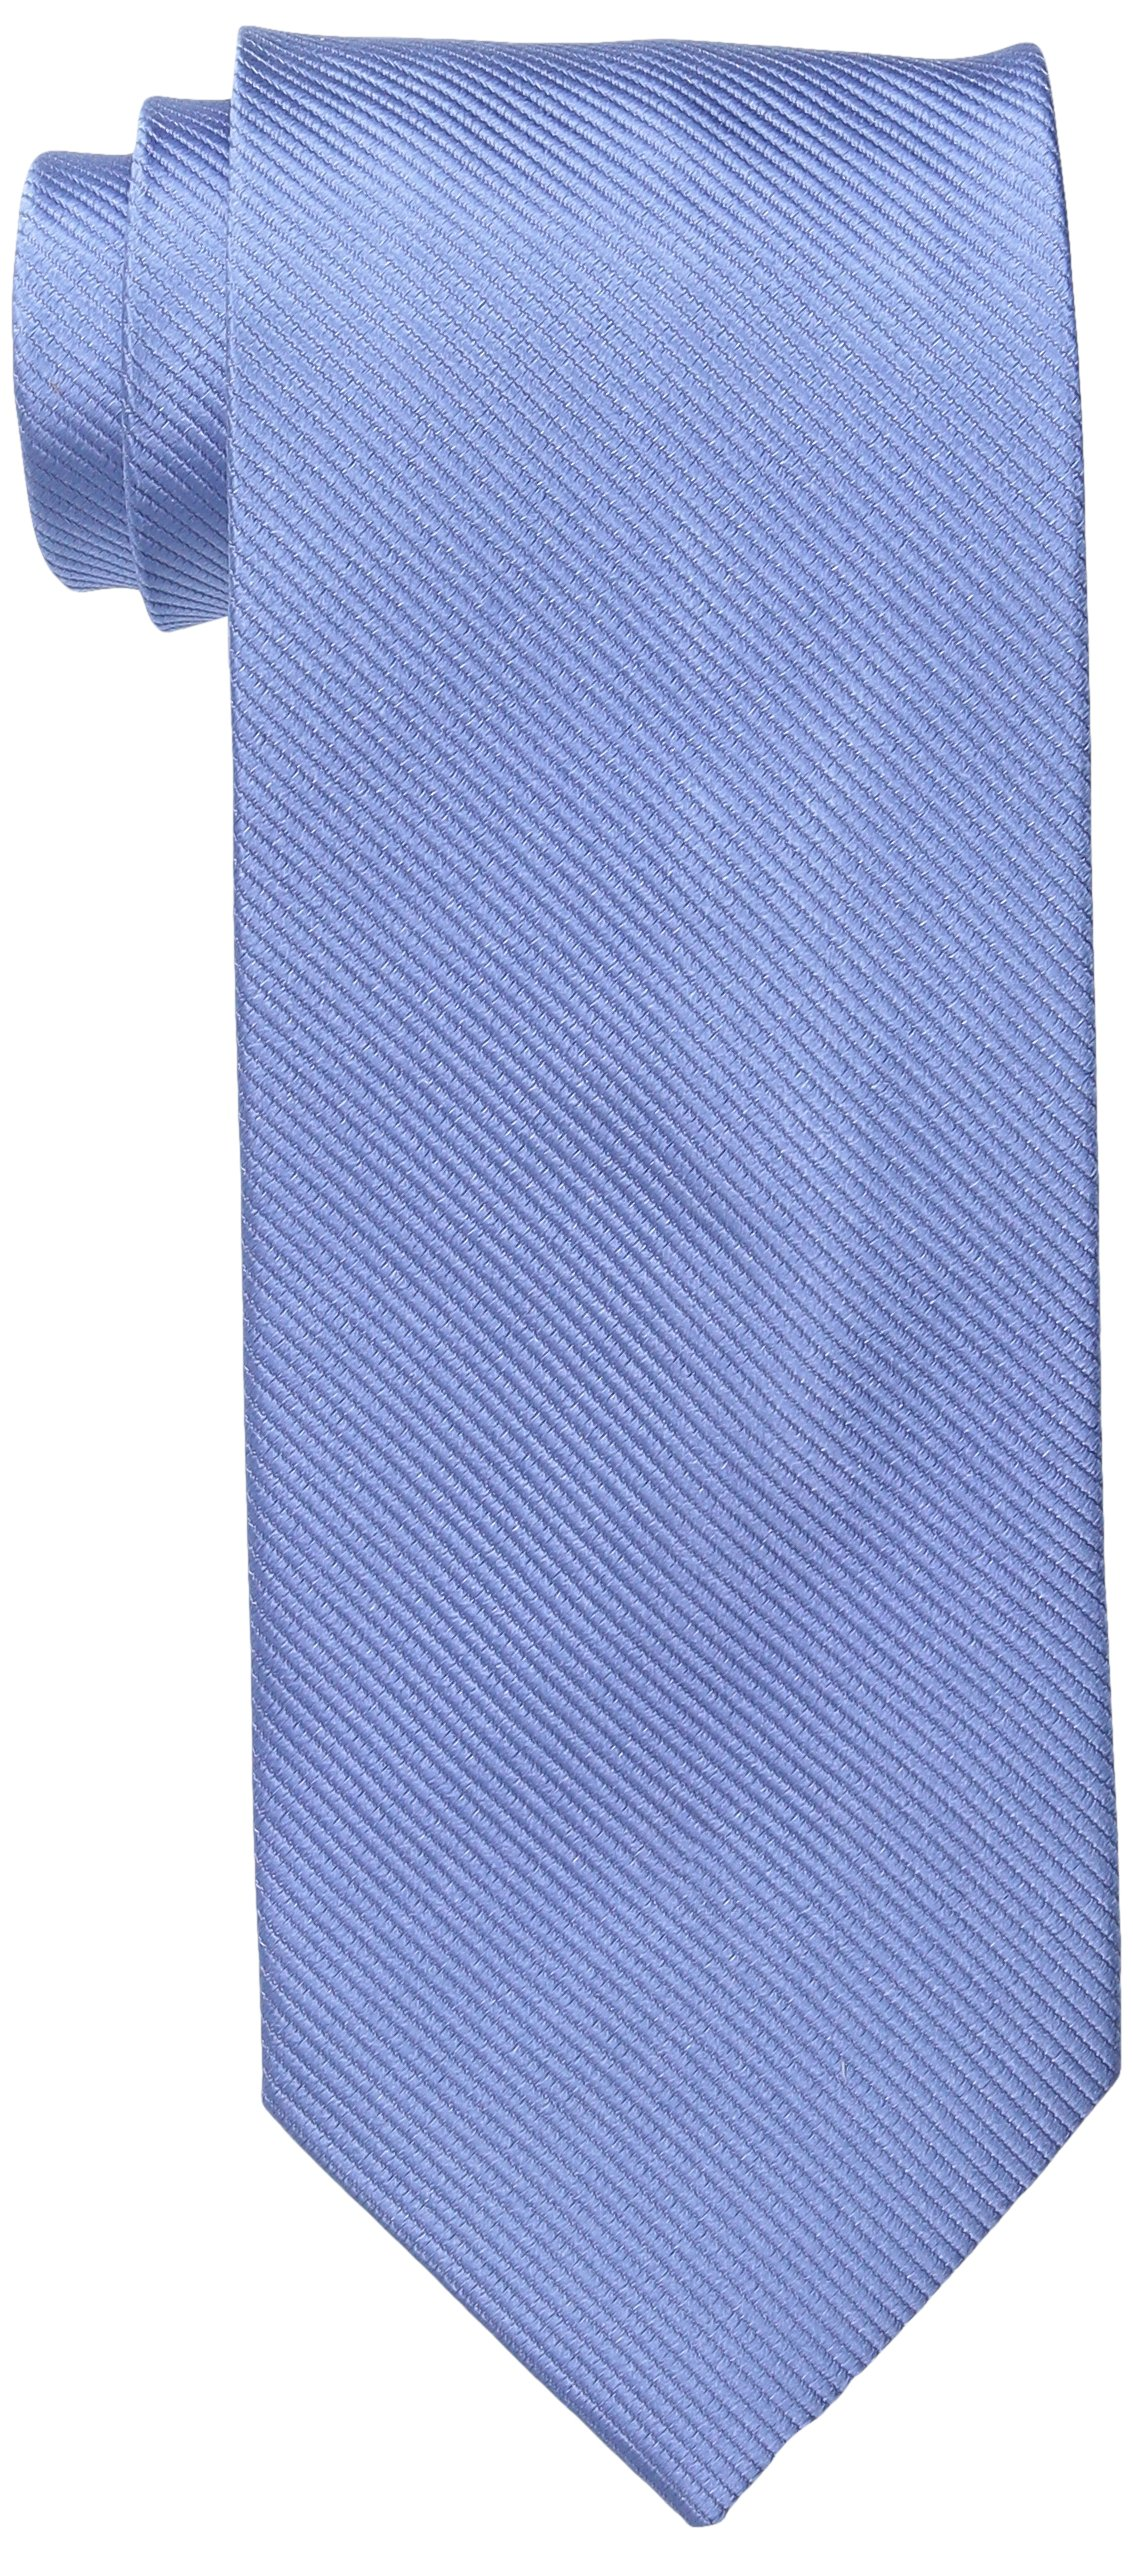 Bruno Piattelli Men's Tall-Plus-Size Extra Long Solid Silk Tie, Powder Blue, One Size